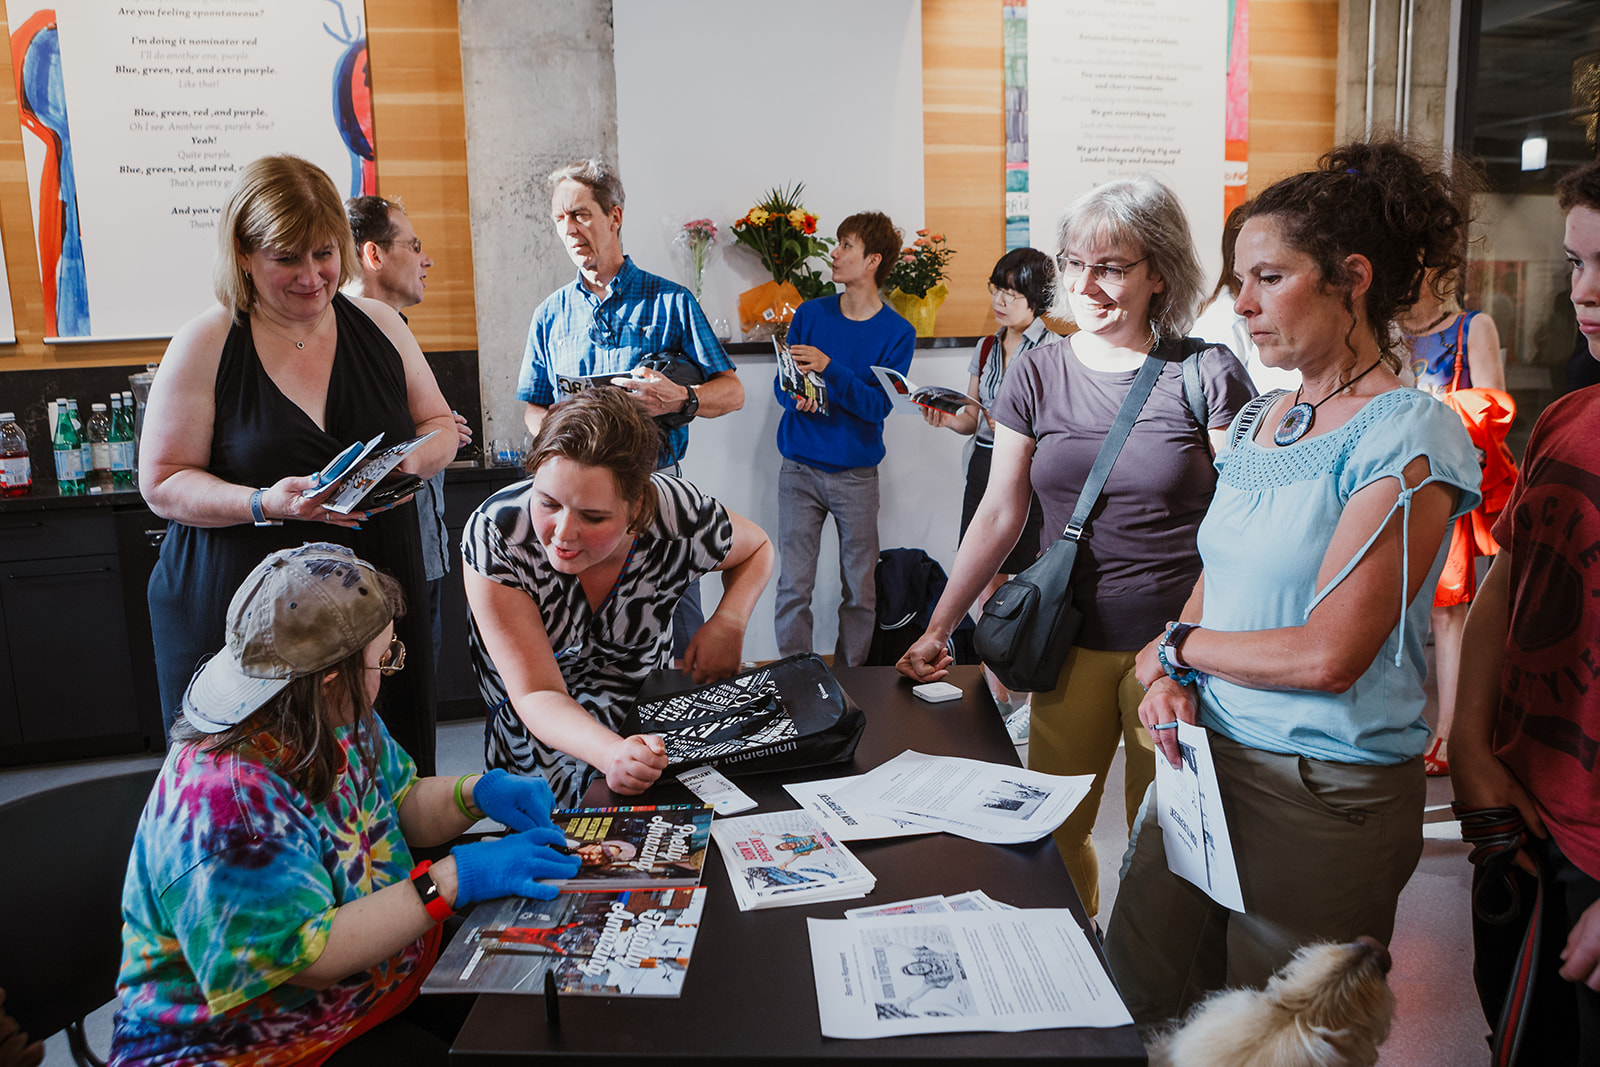 People line up to have Teresa sign copies of her books. A Spectrum Society support worker leans forward towards Teresa. Photo: This Is It Studios.